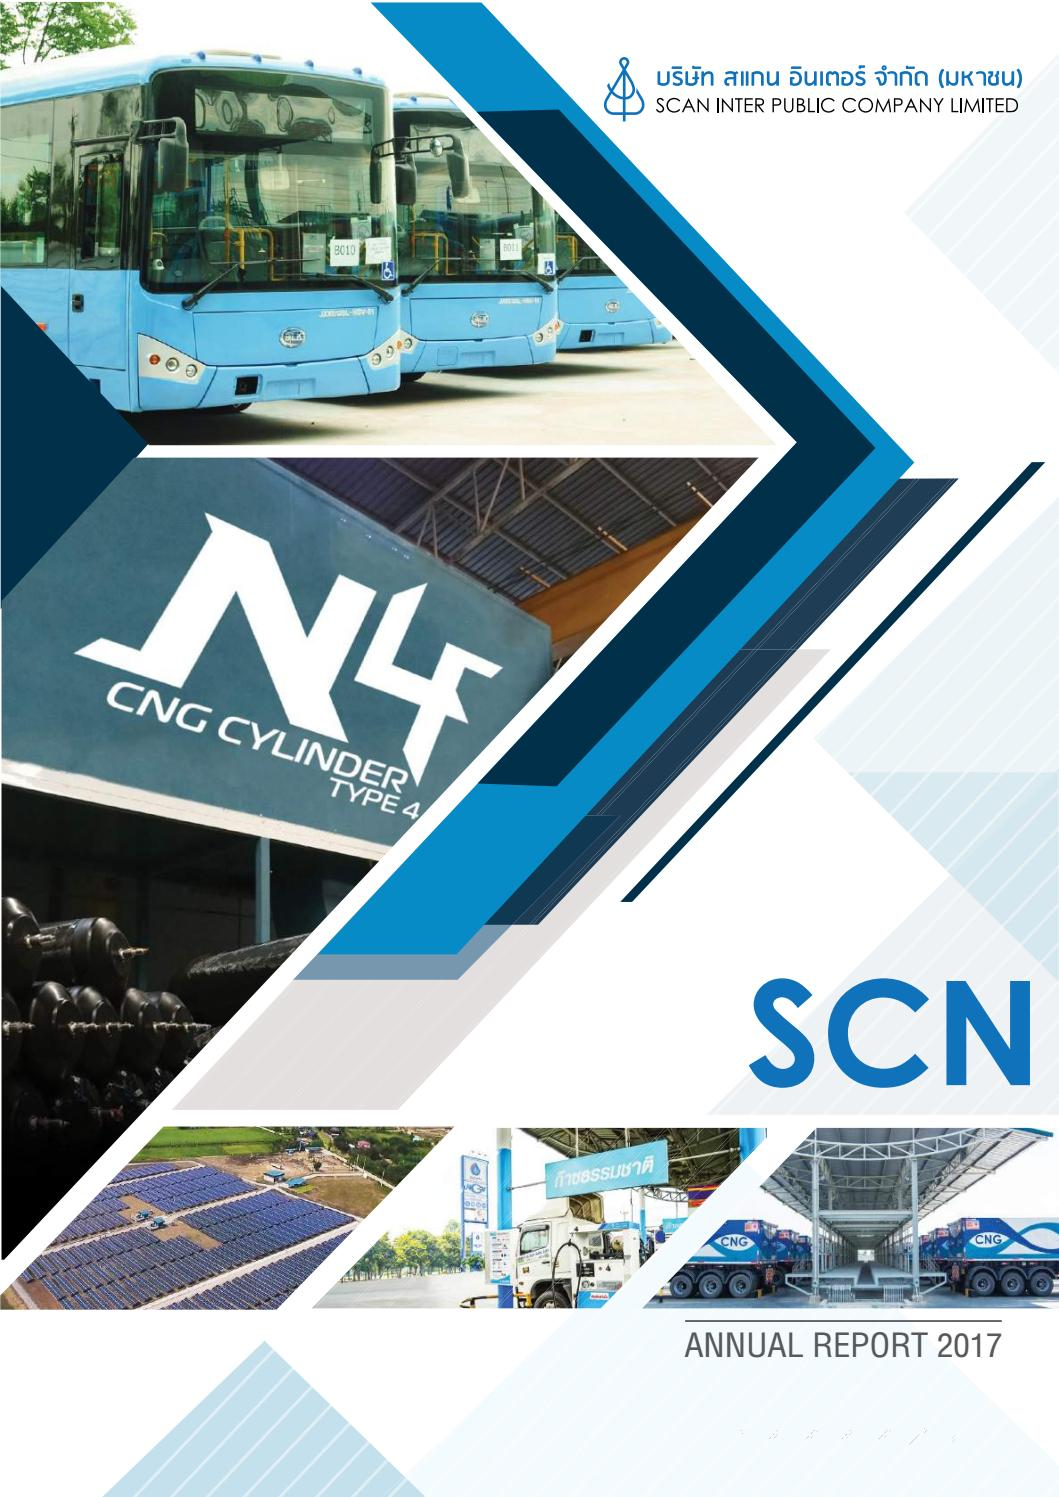 SCN ANNUAL REPORT 2017 EN by ar scn - issuu